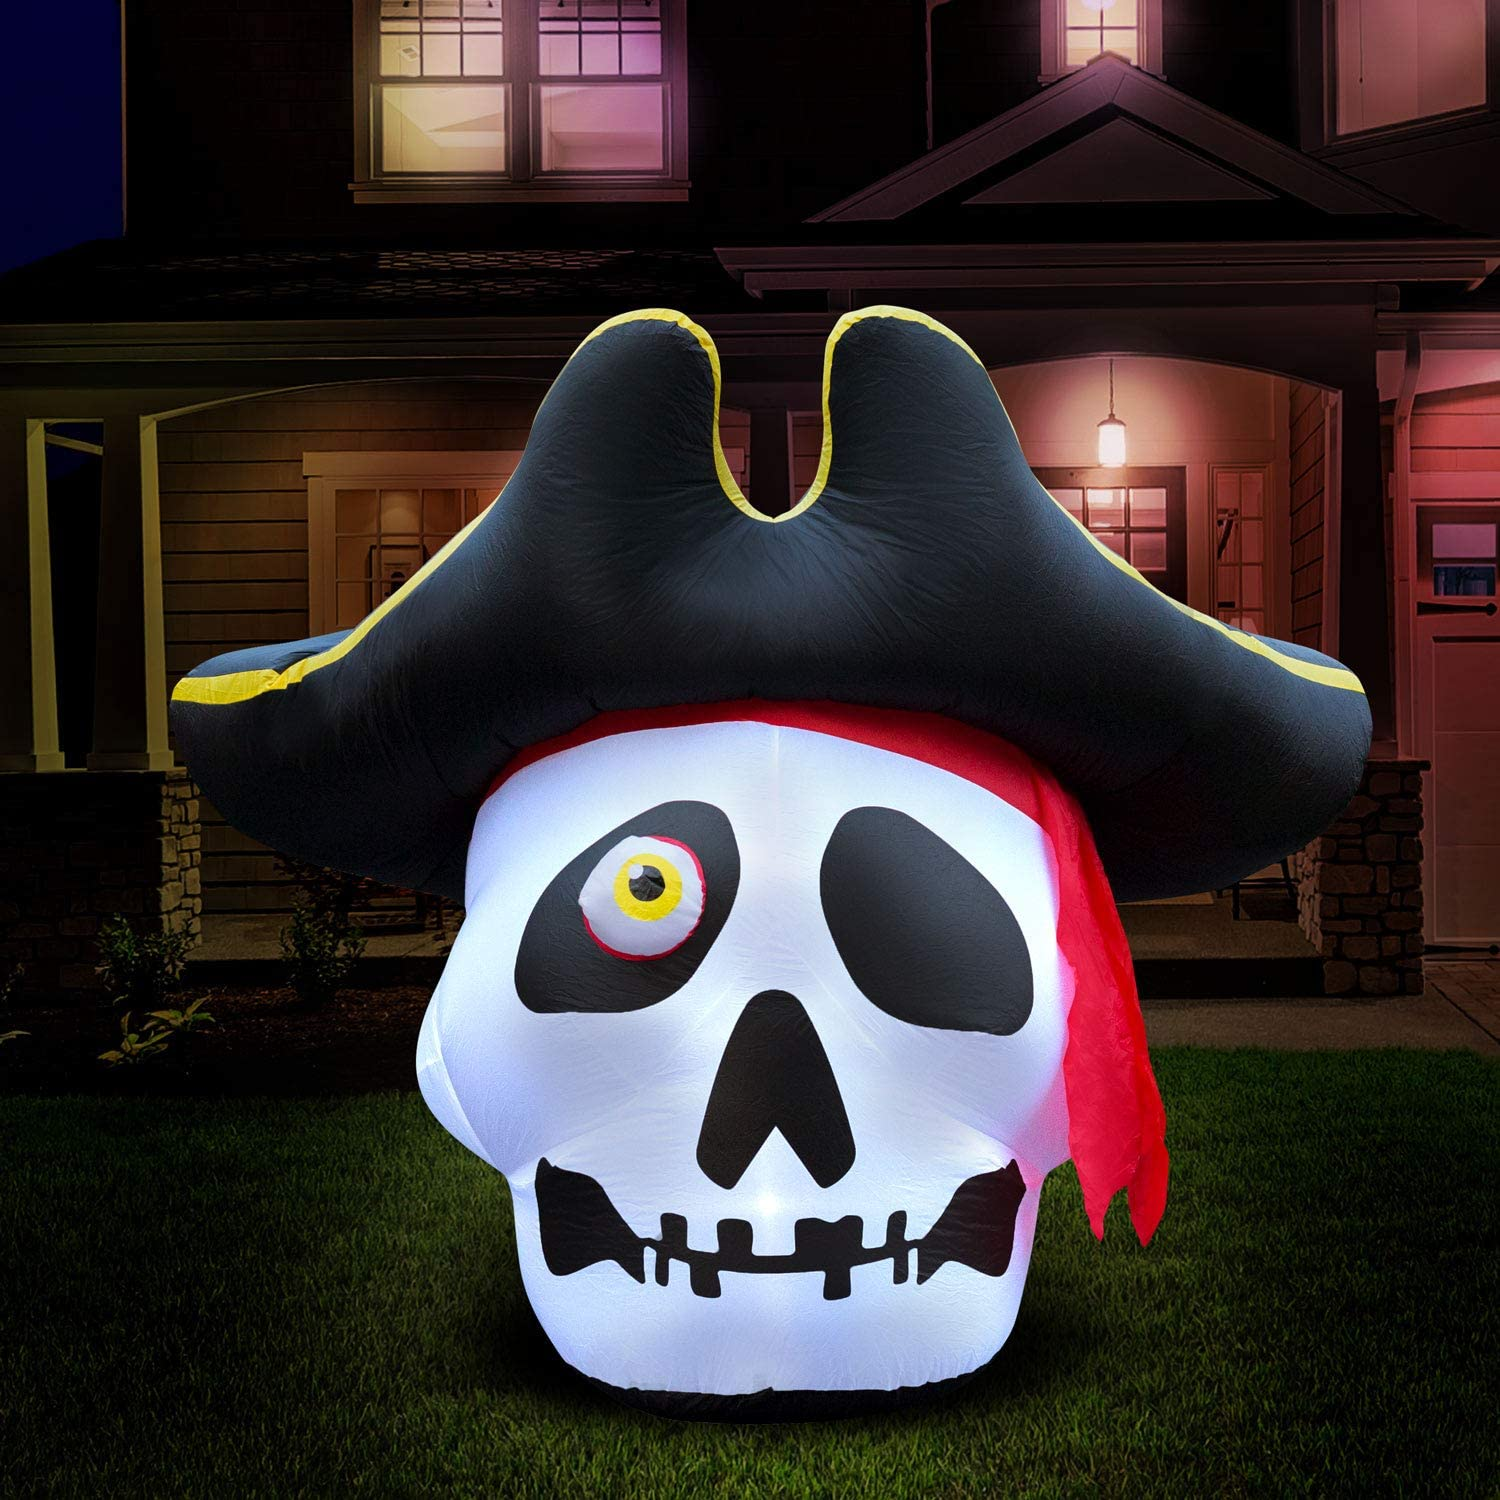 Holidayana 5 ft Inflatable Halloween Pirate Skull Yard Decoration - 5 ft Tall Airblown Lawn Decoration, Bright Internal Lights, Built-in Fan, and Included Stakes and Ropes